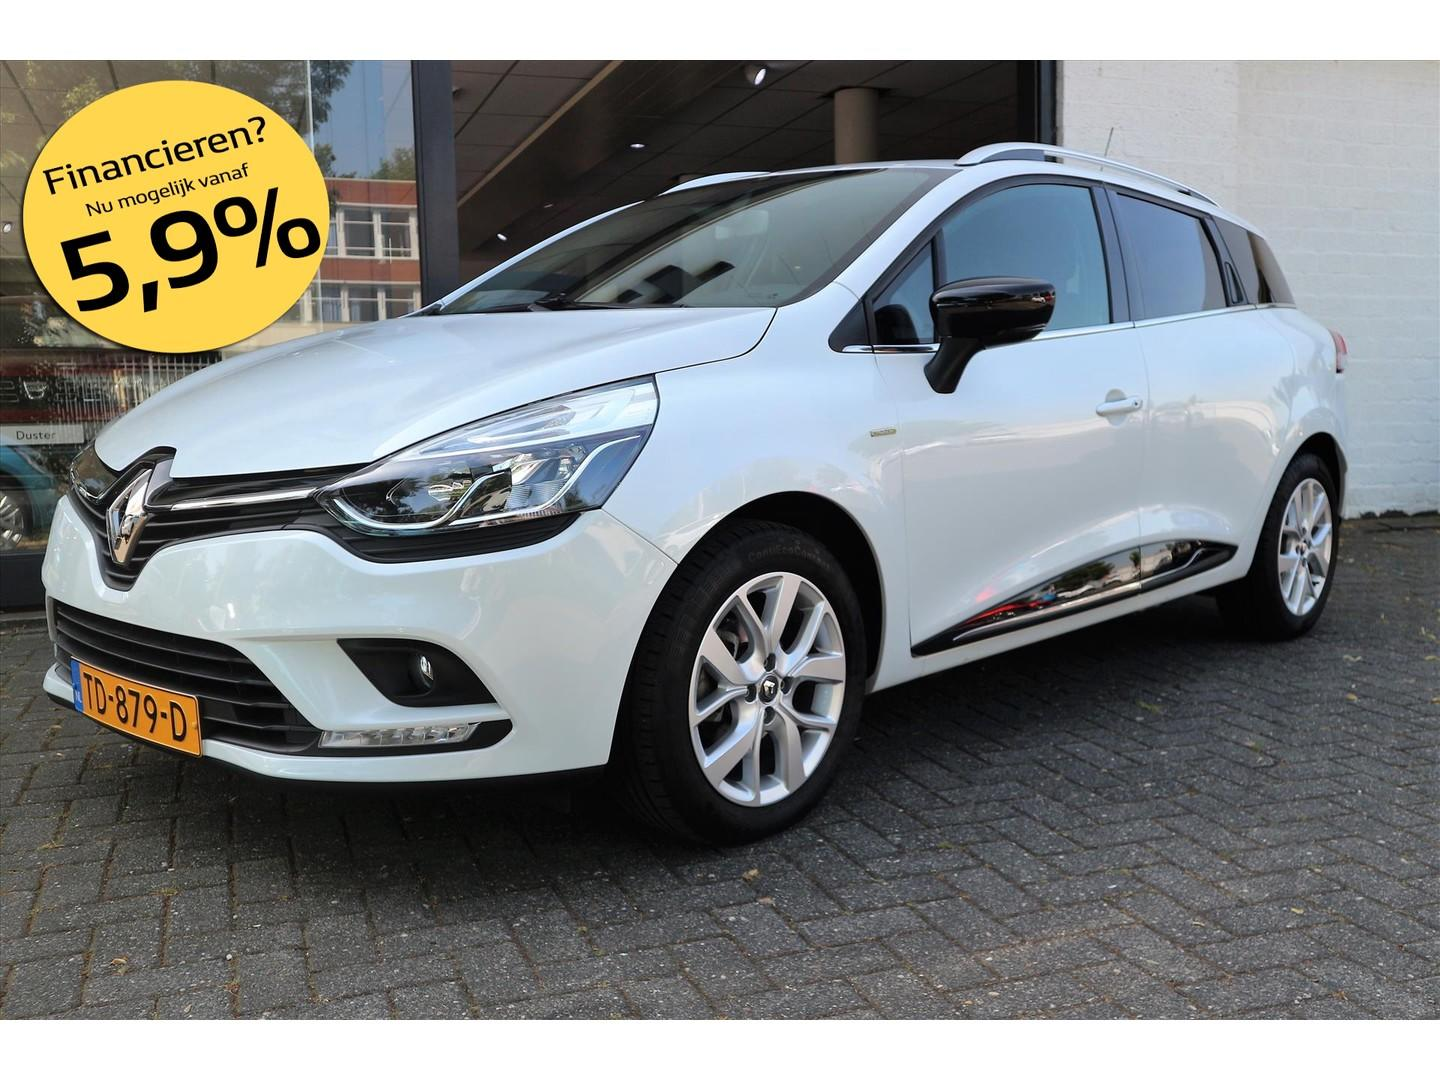 Renault Clio Estate 90tce limited*fin va. 5,9%*